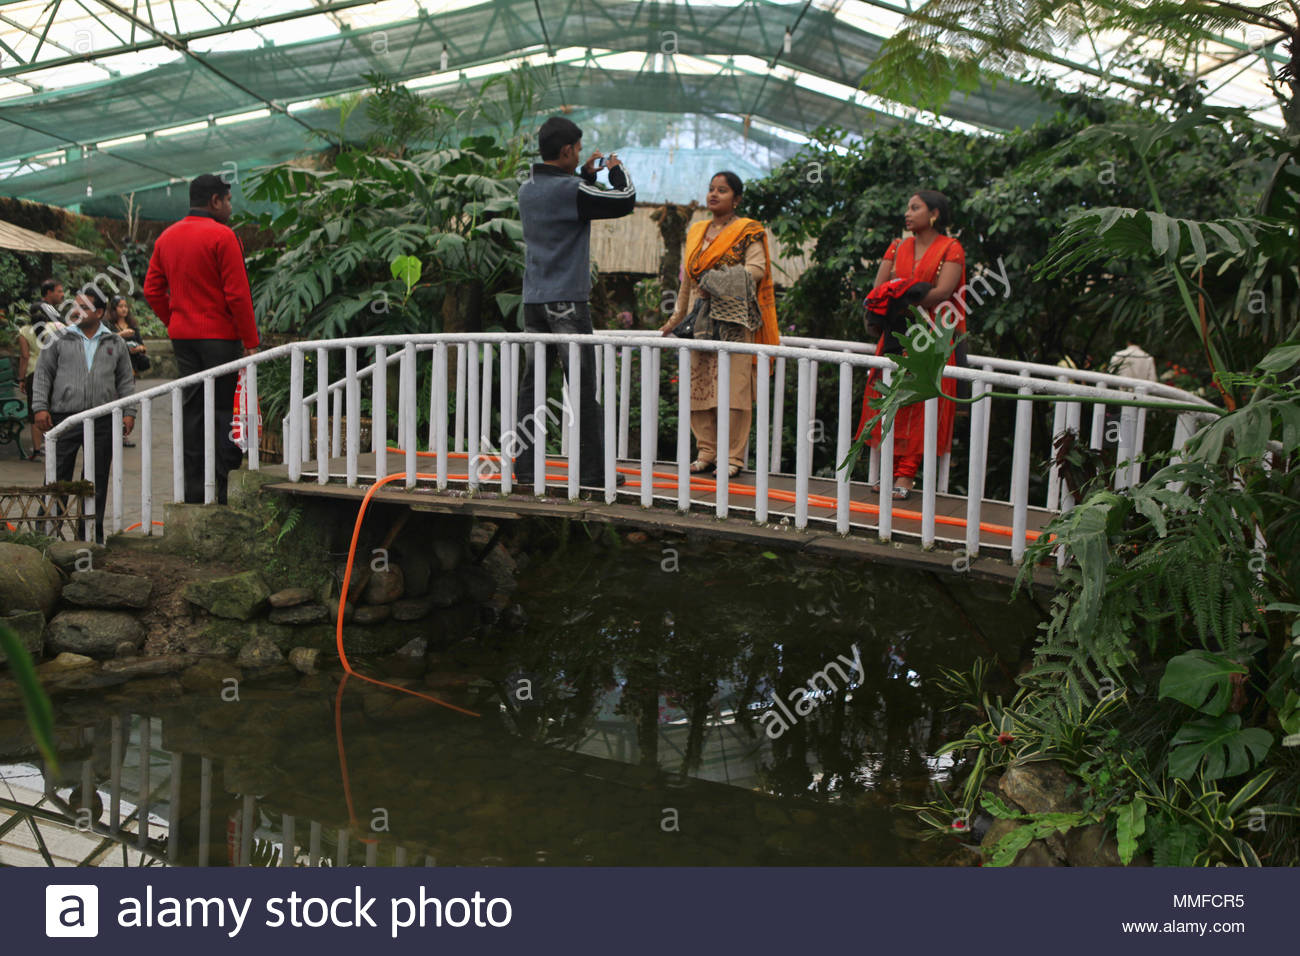 Indian tourists at the Flower Exhibition Center in Gangtok Sikkim. Sikkim is famous for flowers especially orchids and the Flower Exhibition is very p - Stock Image